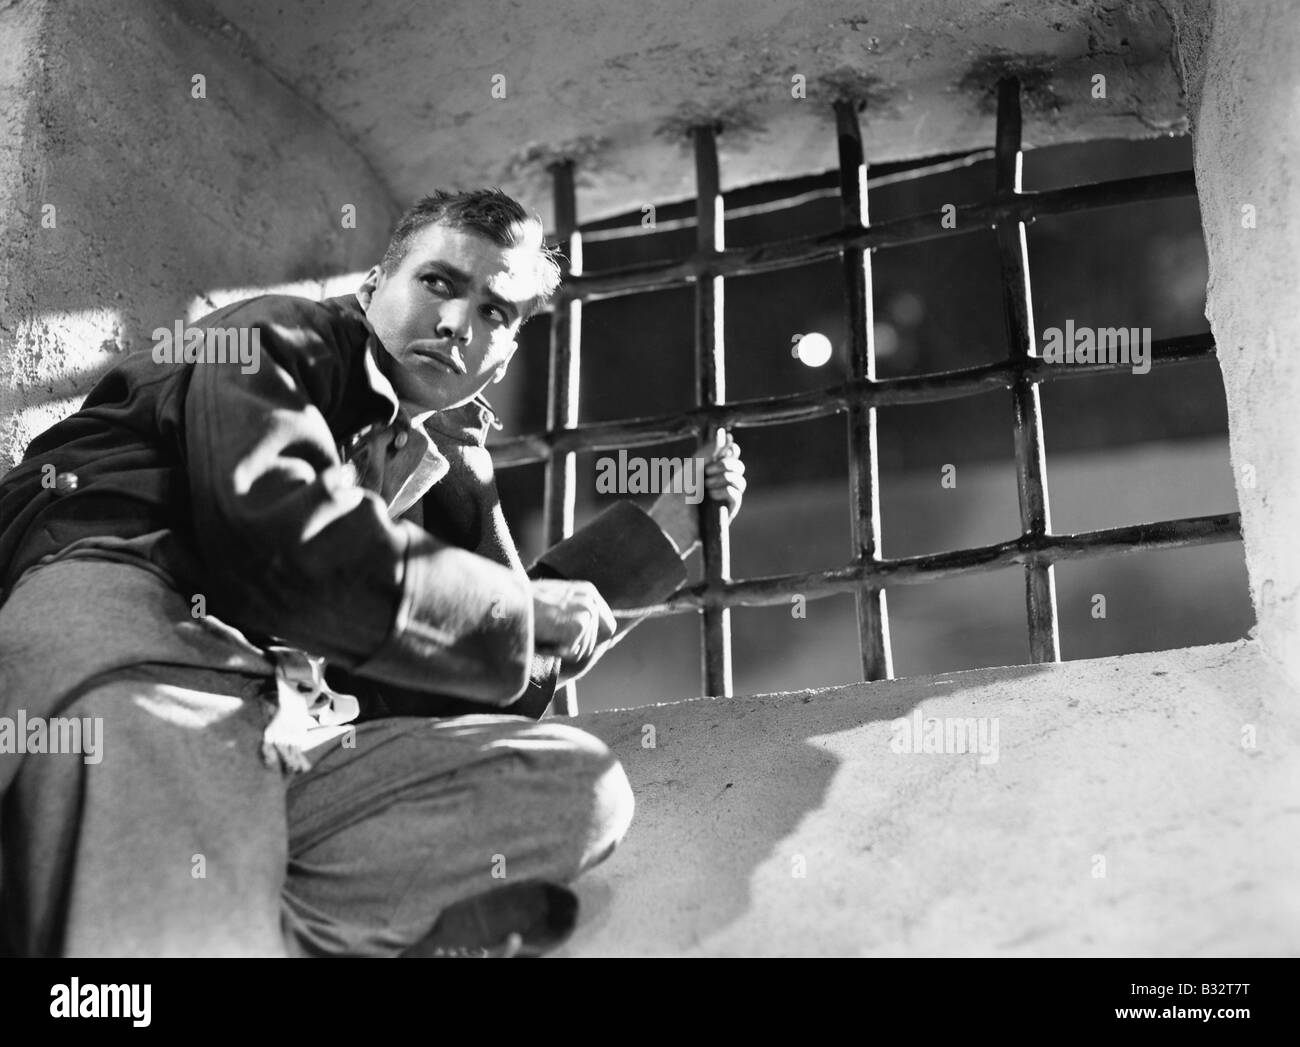 Low angle view of a young man trying to escape from a prison cell - Stock Image